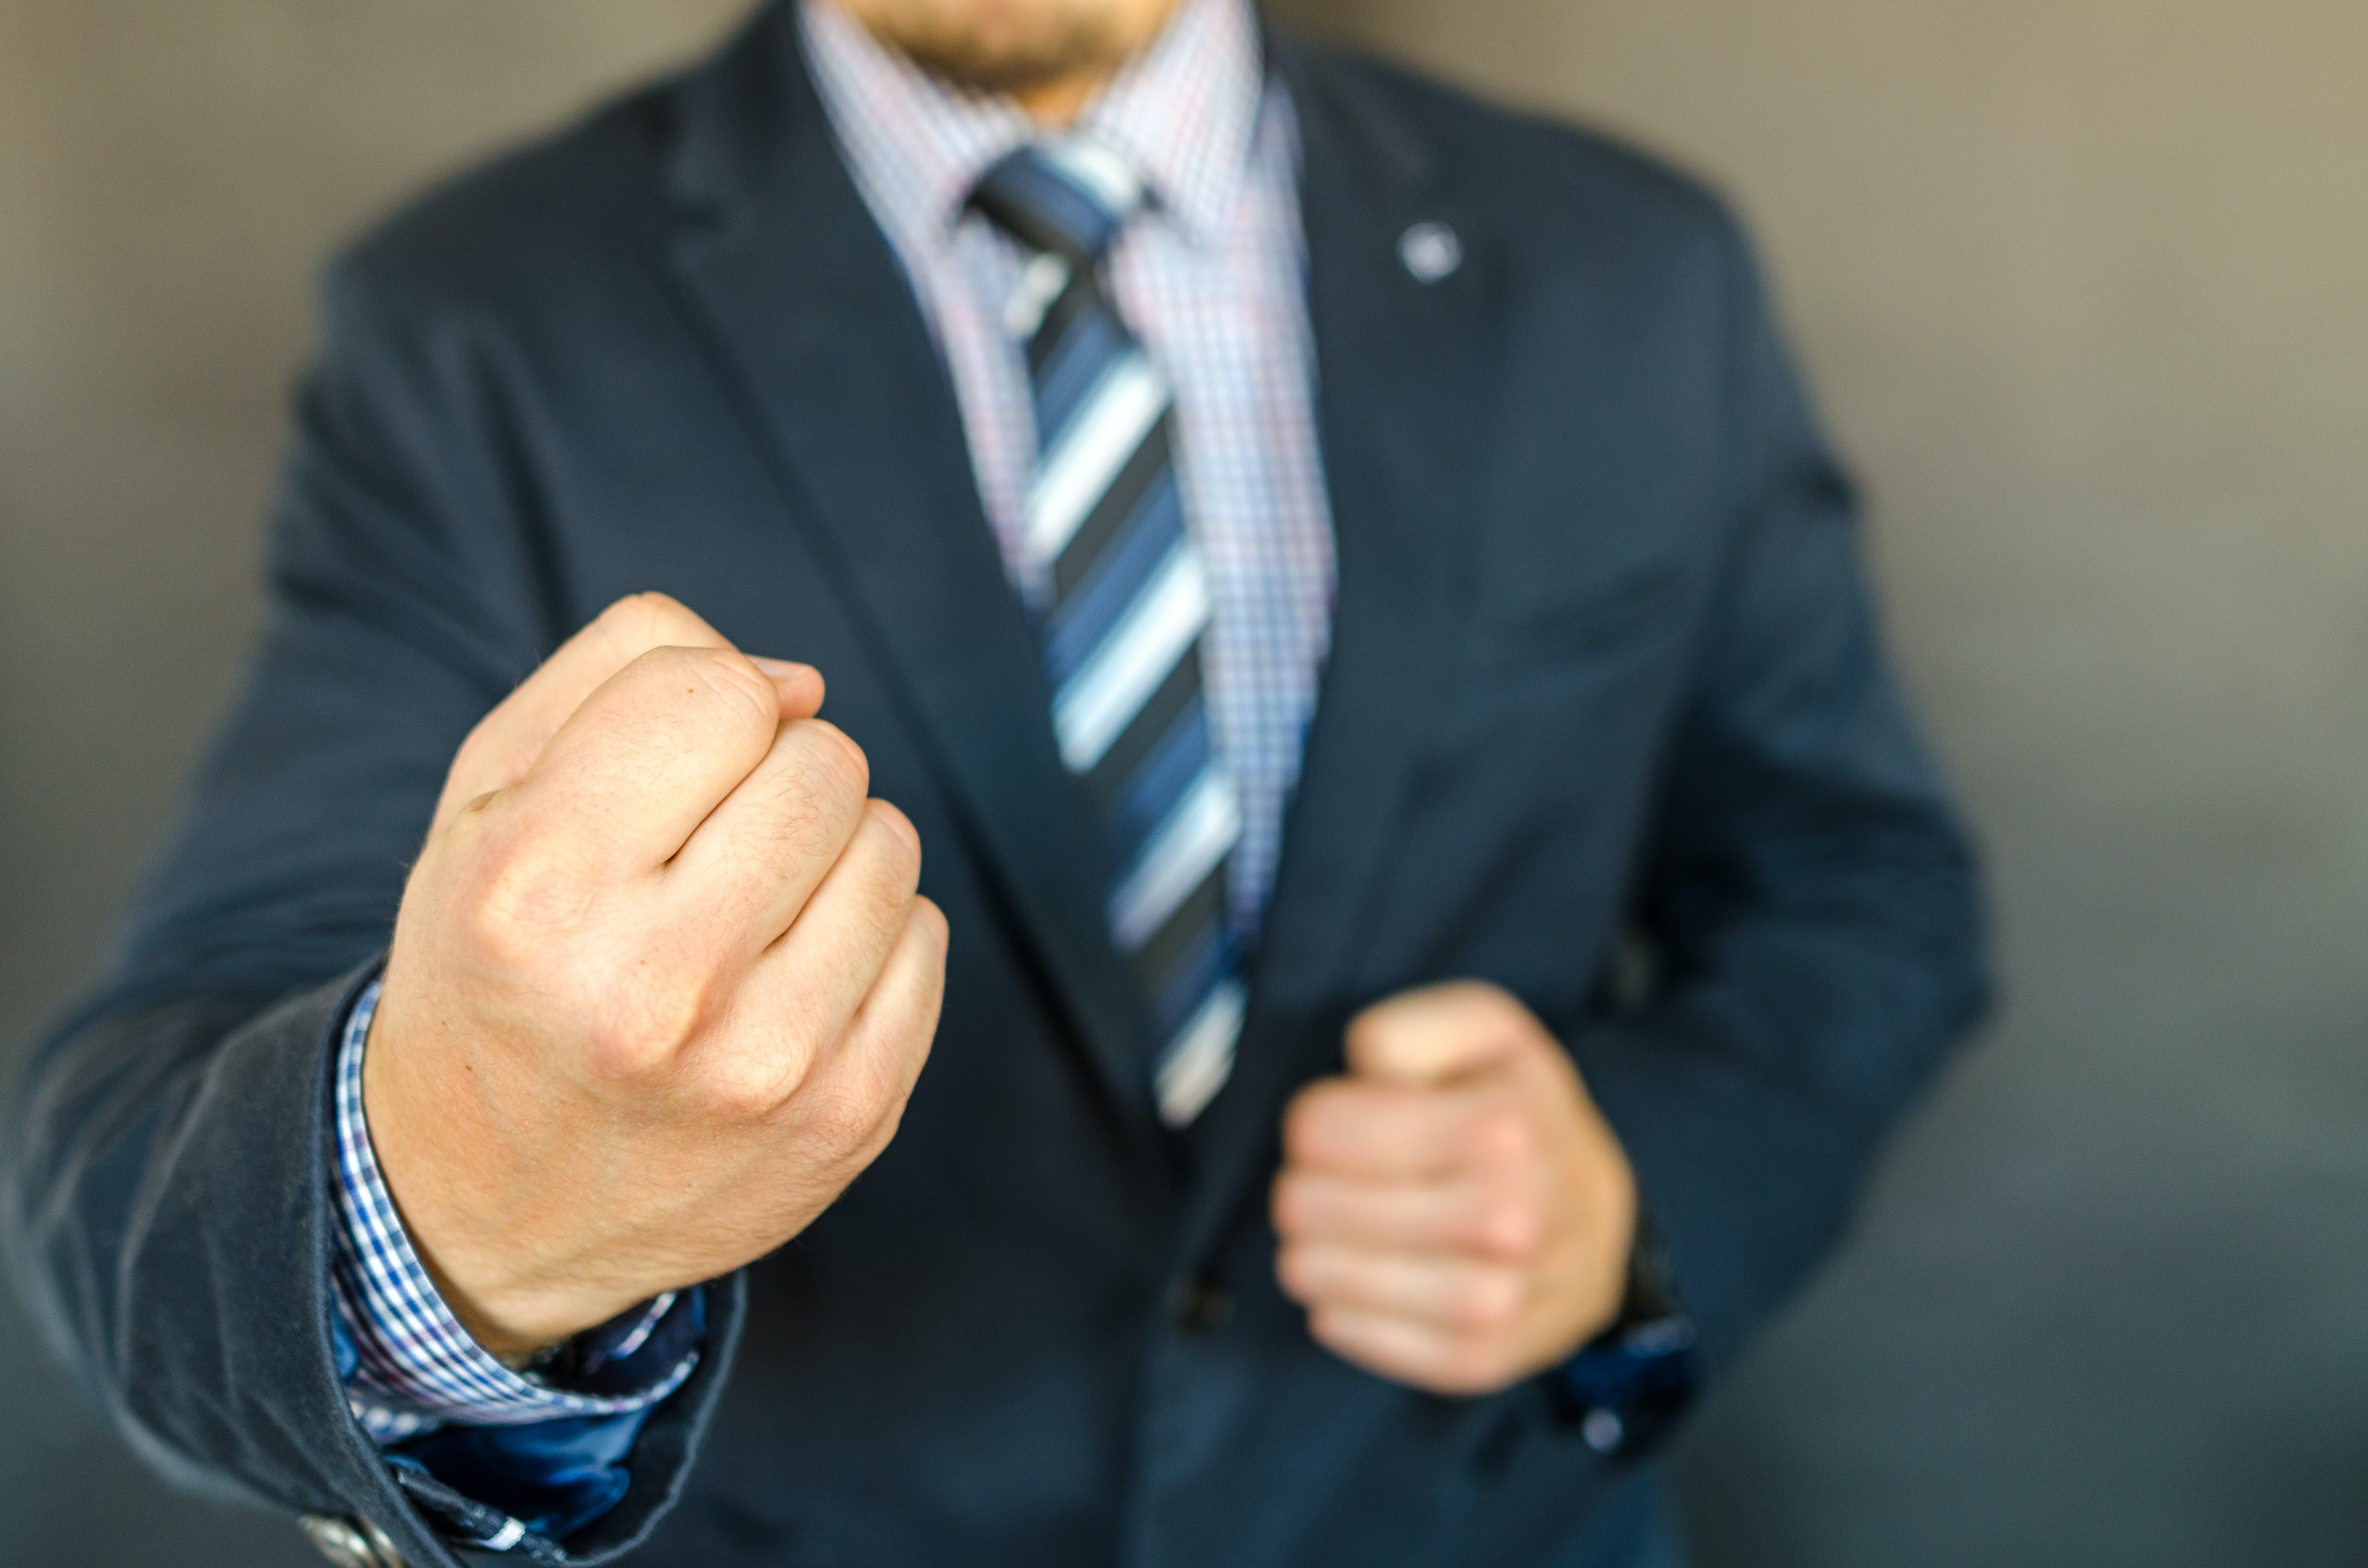 A man holding his fists up - he's ruthless when making decisions.